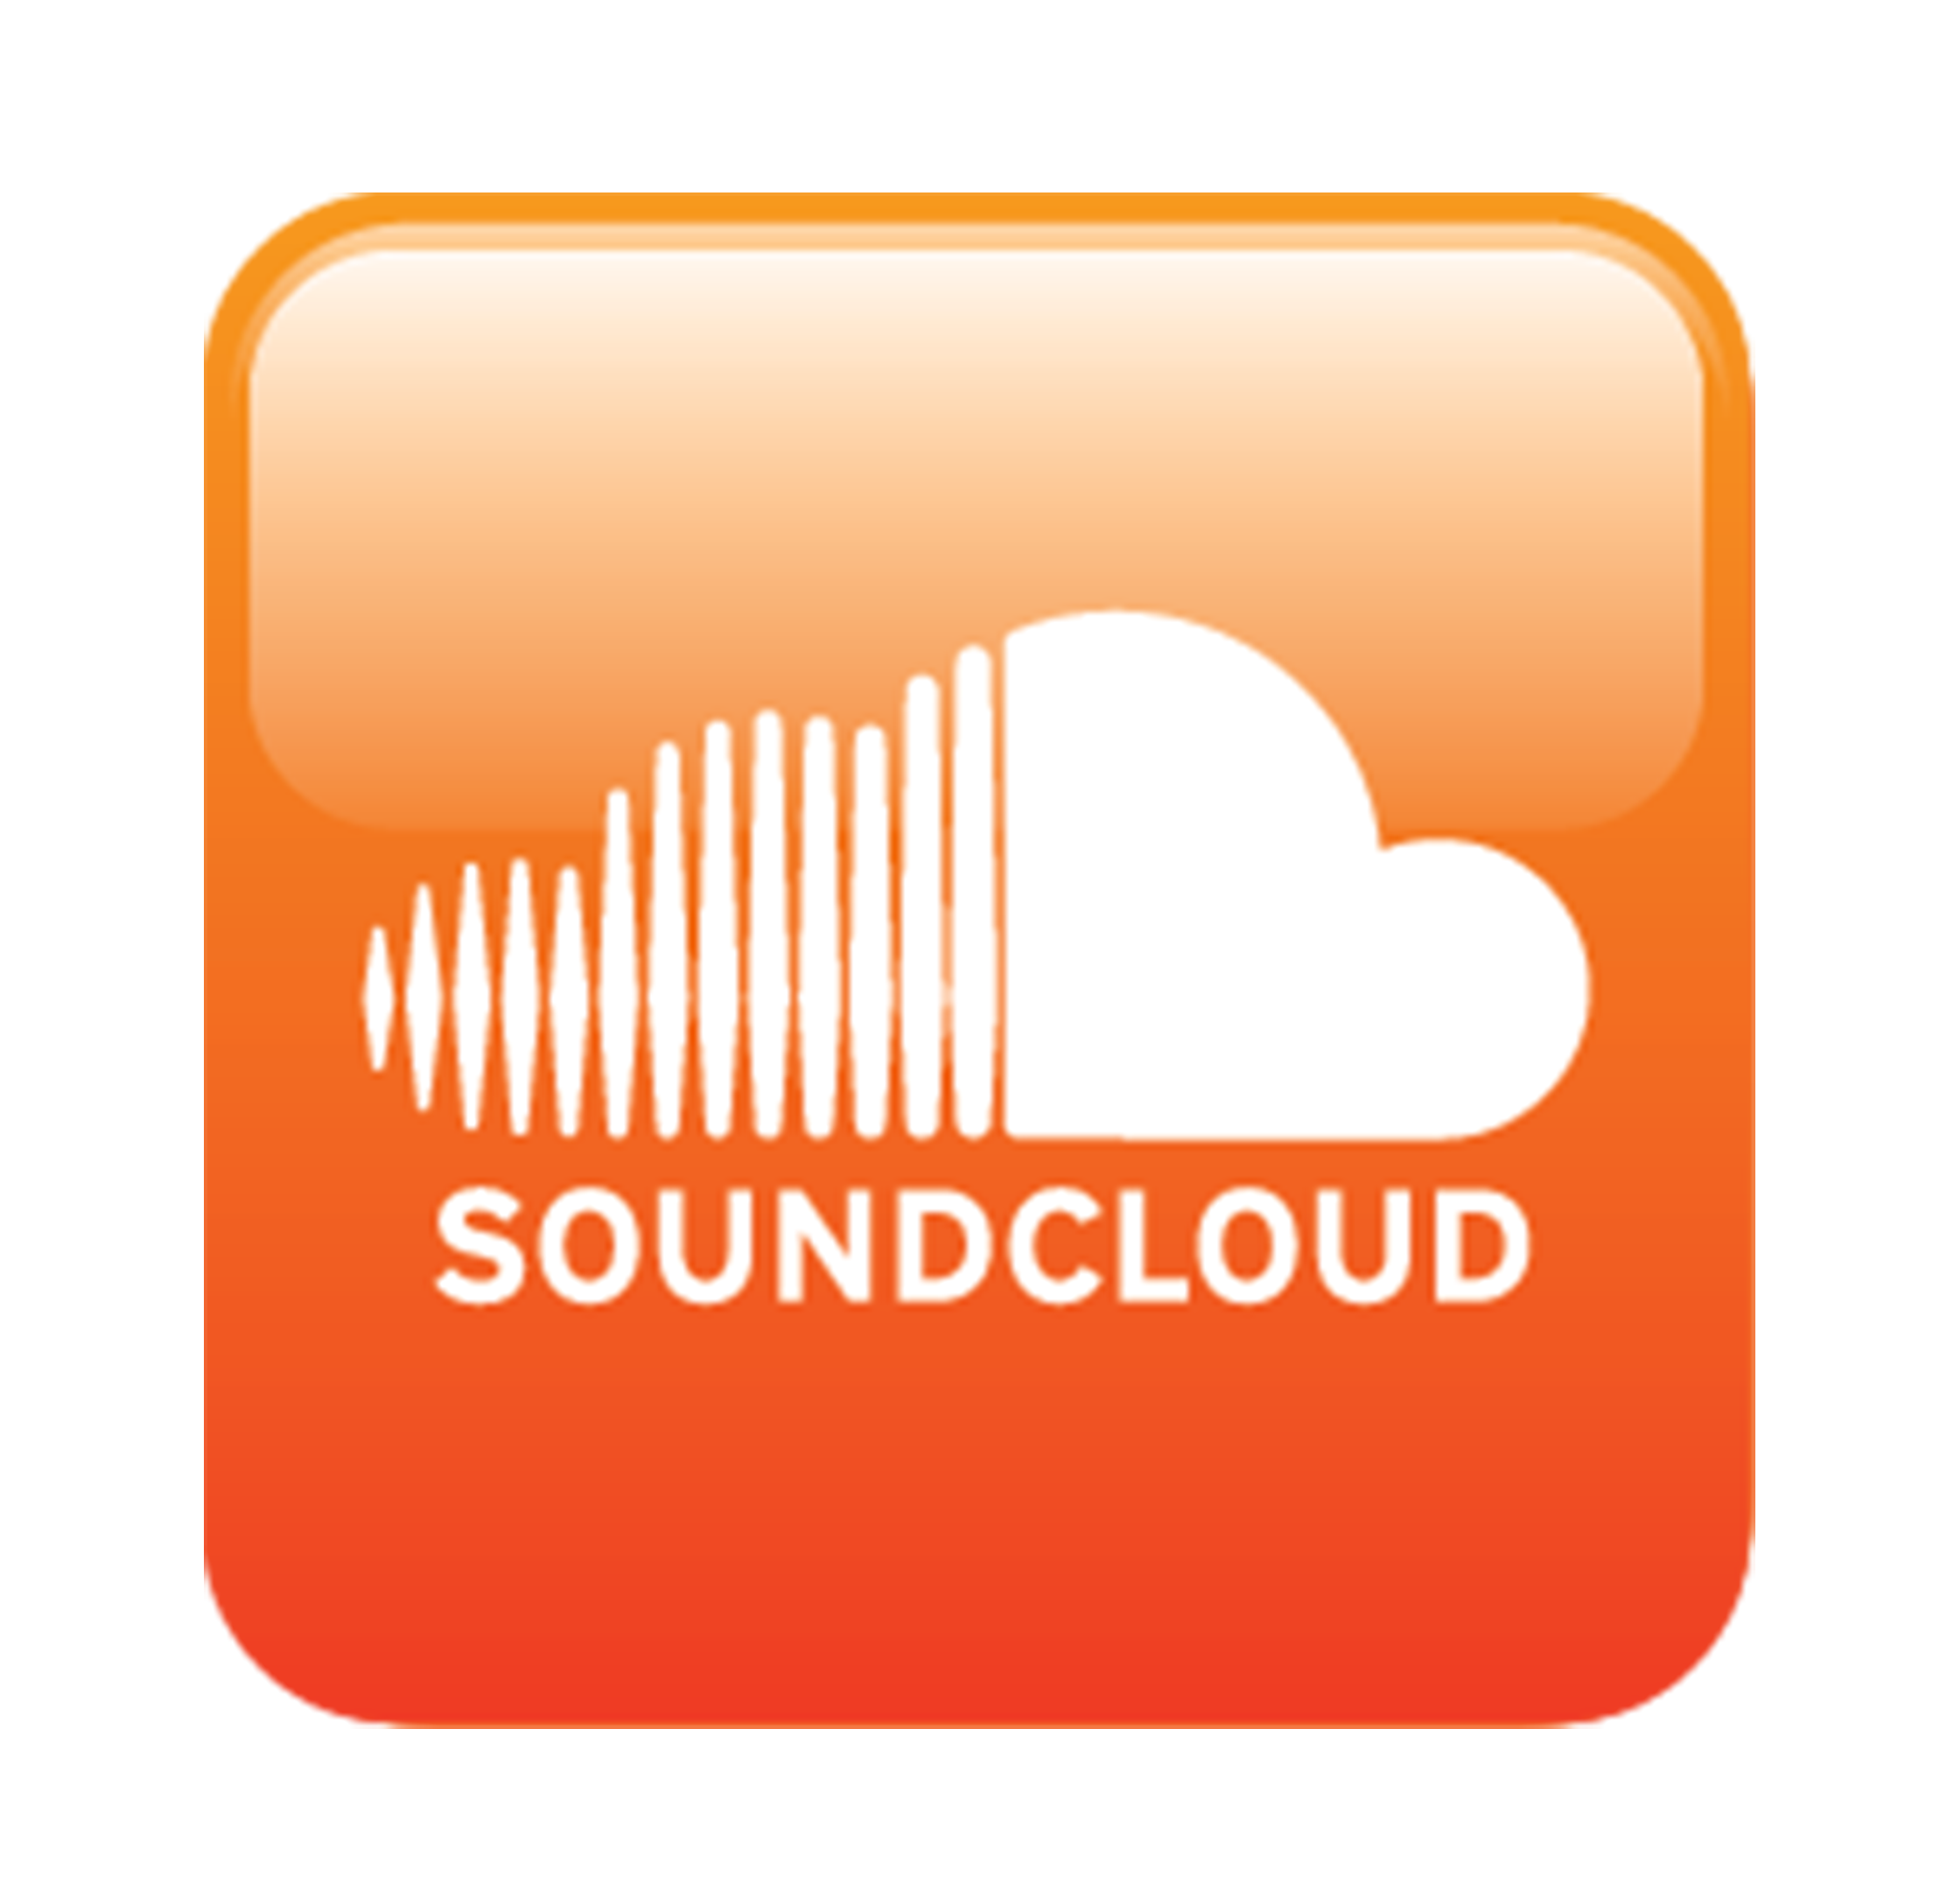 Png soundcloud. Free background music